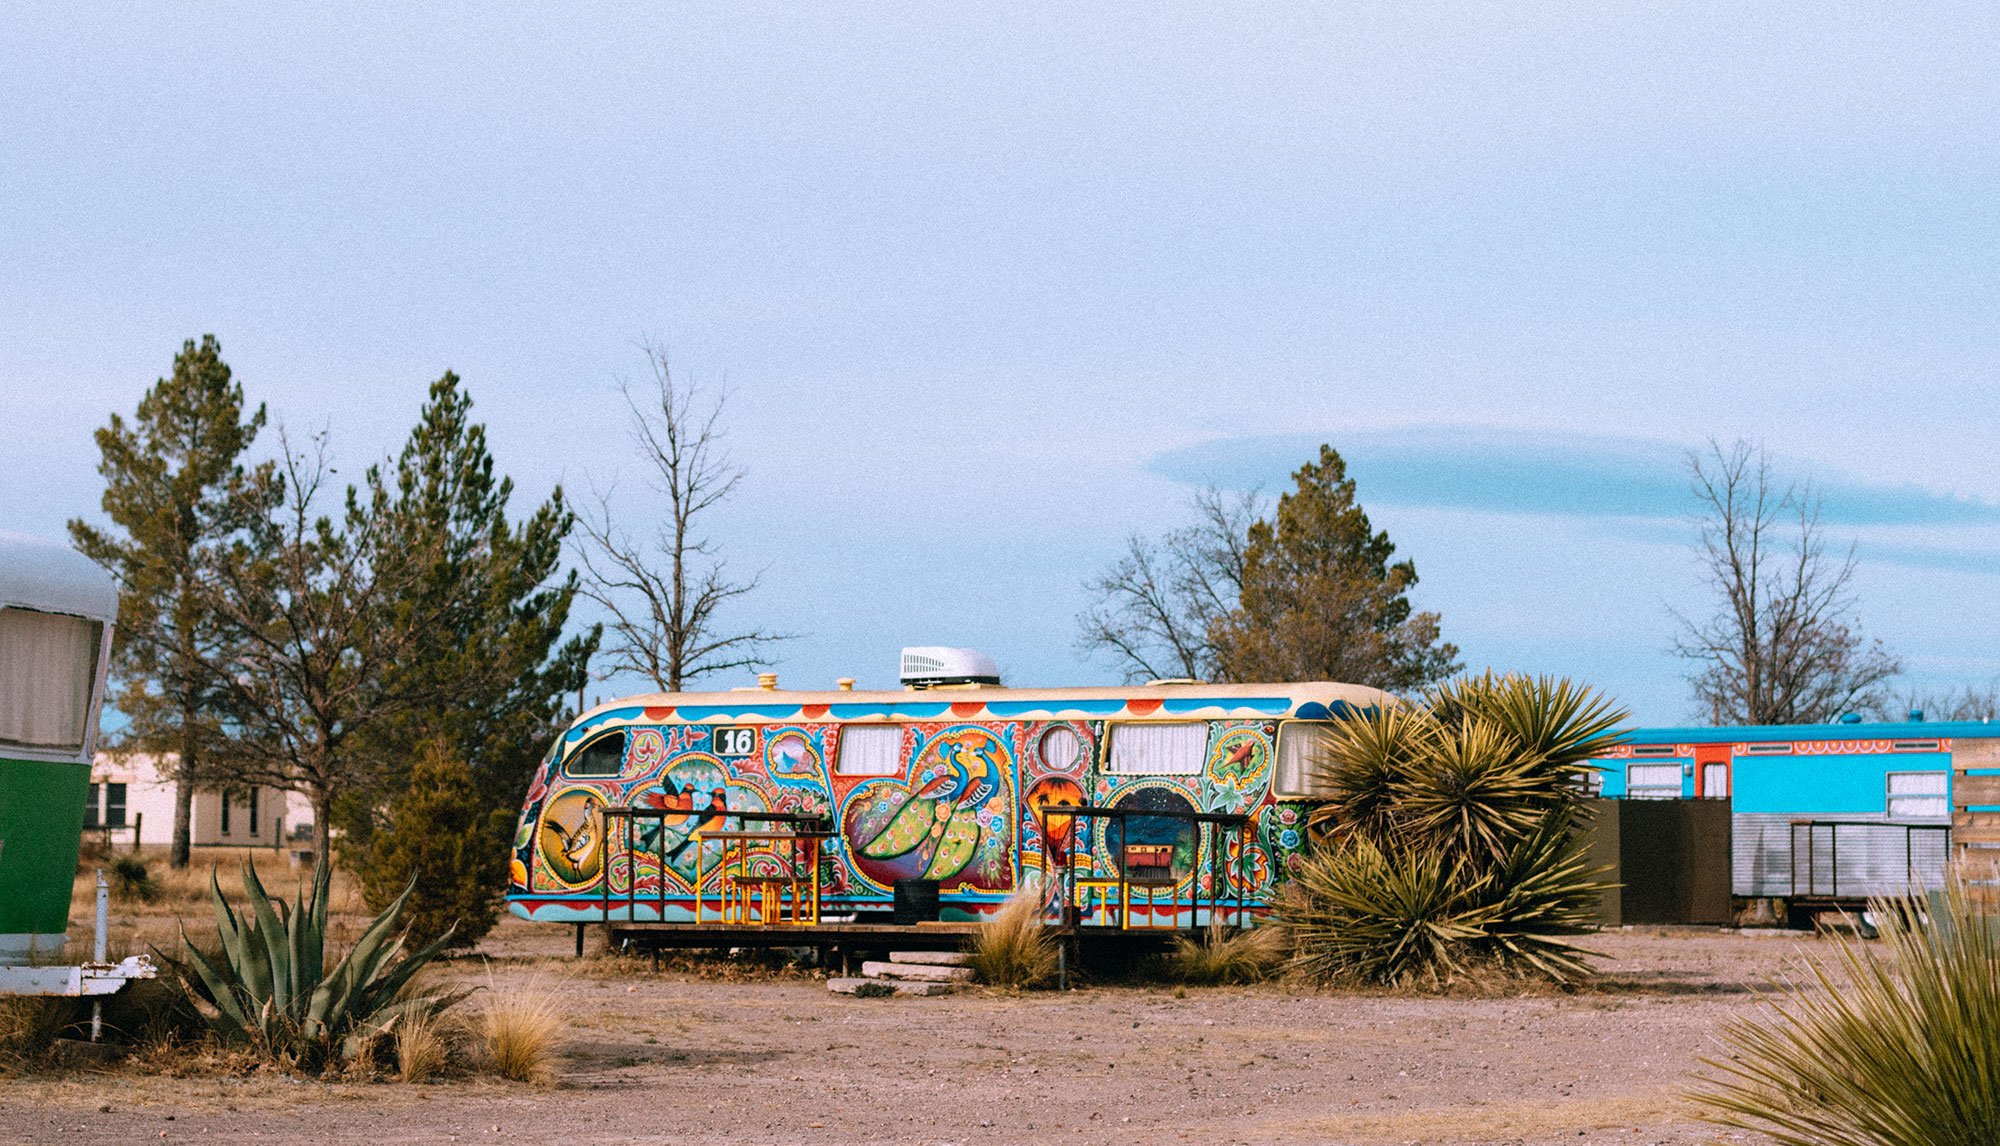 A Quick Travel Guide to Marfa, Texas / What to Do, See & Eat in Marfa - Travel Guide by iHeartAlice.com - Lifestyle, Travel, Fashion & Foodblog by Alice M. Huynh / Texas Travel Guide – 7 Things To Do & See in Marfa, Texas